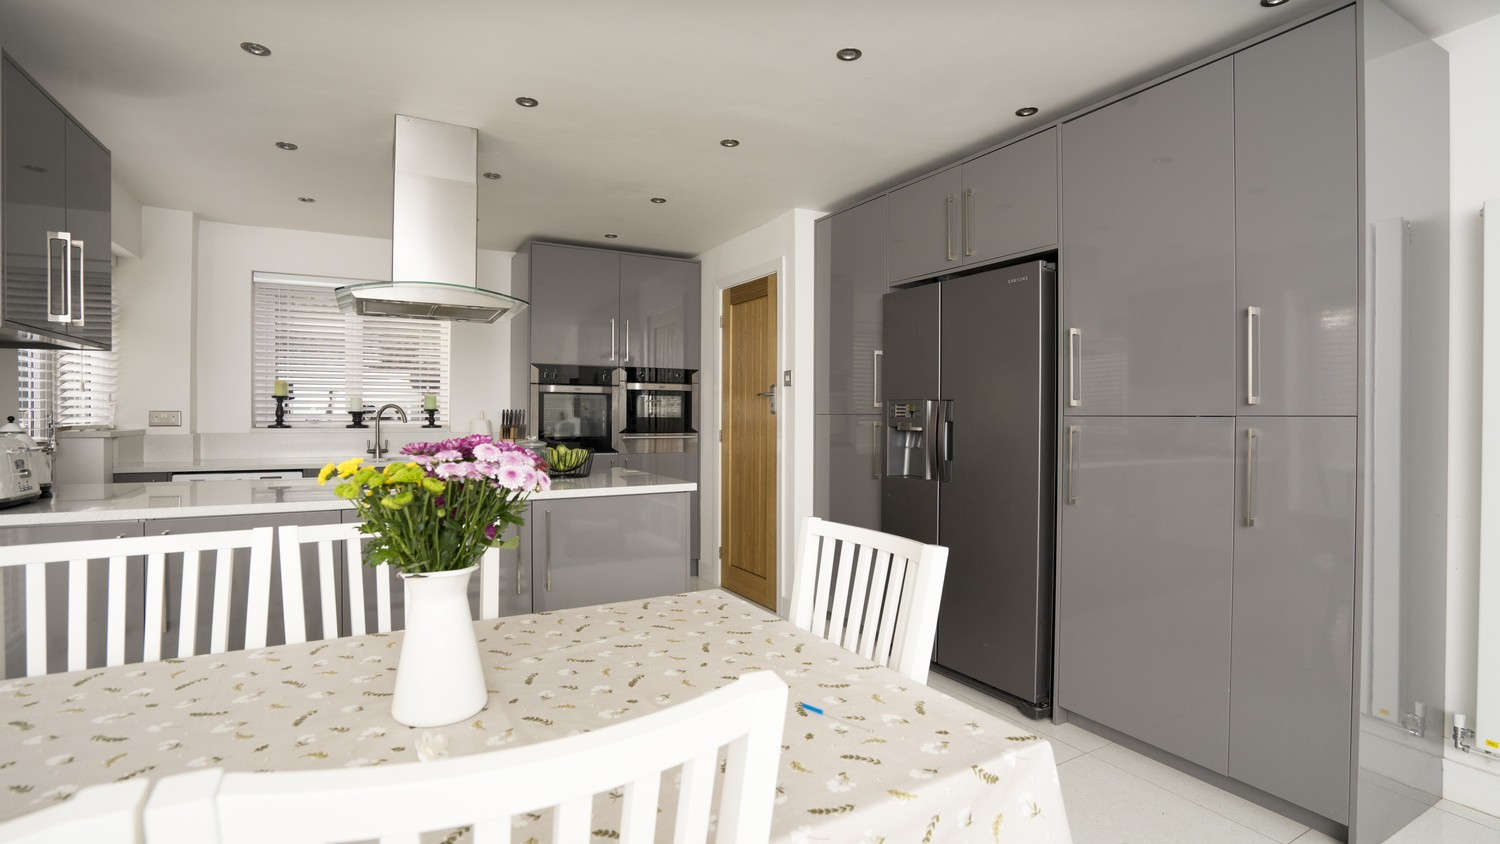 Grey gloss kitchen with integrated appliances and large fridge/freezer in Kirkby, Liverpool. The kitchen features a ceiling hung extractor fan and floor to ceiling cupboards.